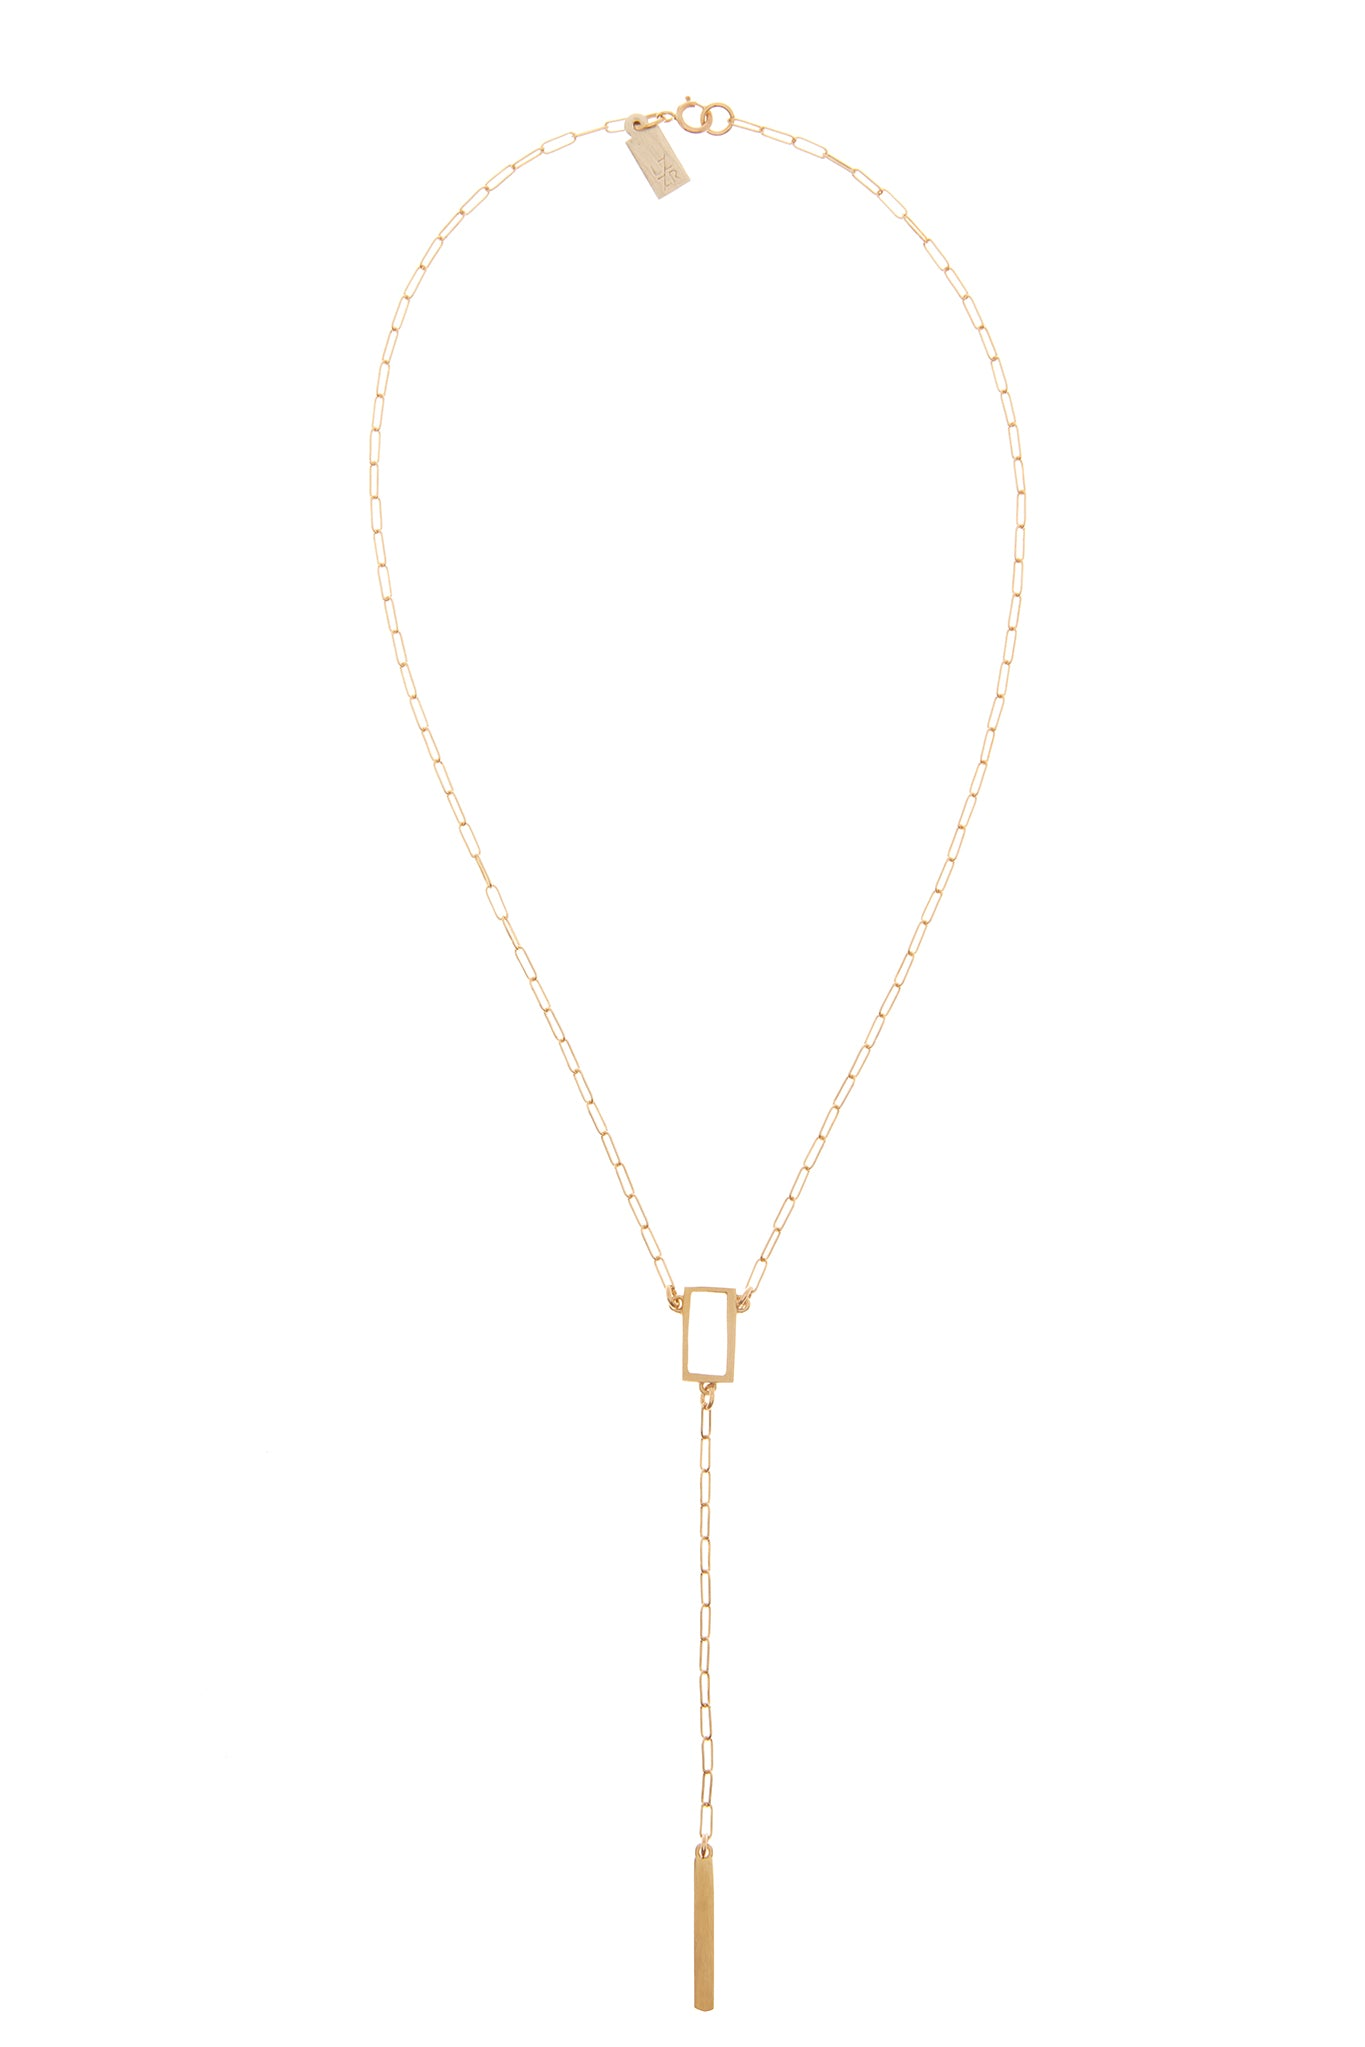 SMALL GOLD DROP NECKLACE